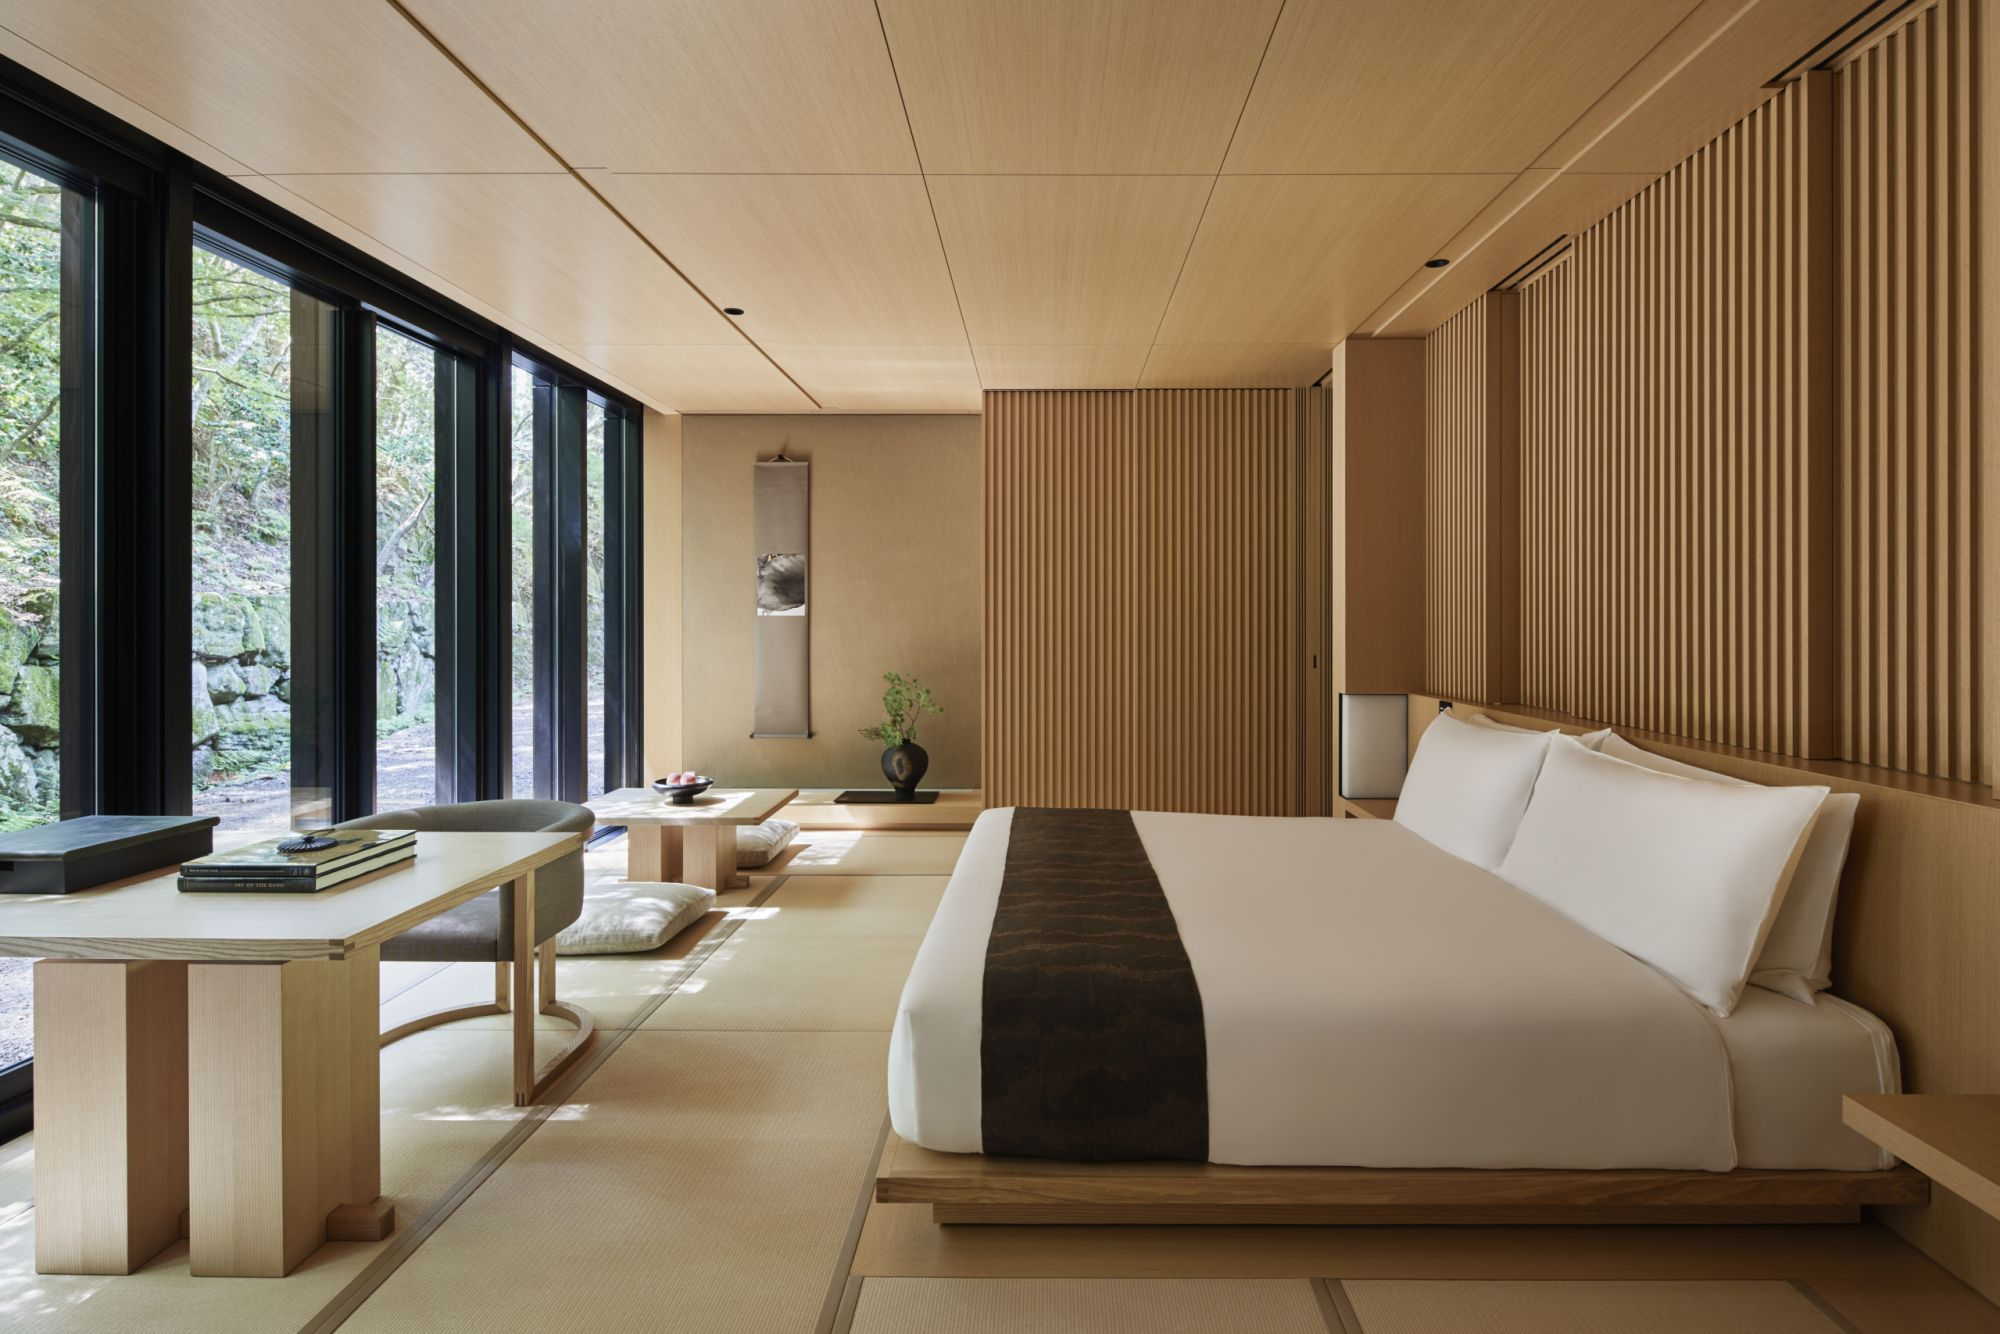 Aman's Newest Property Is A Secret Sanctuary In Quaint Kyoto